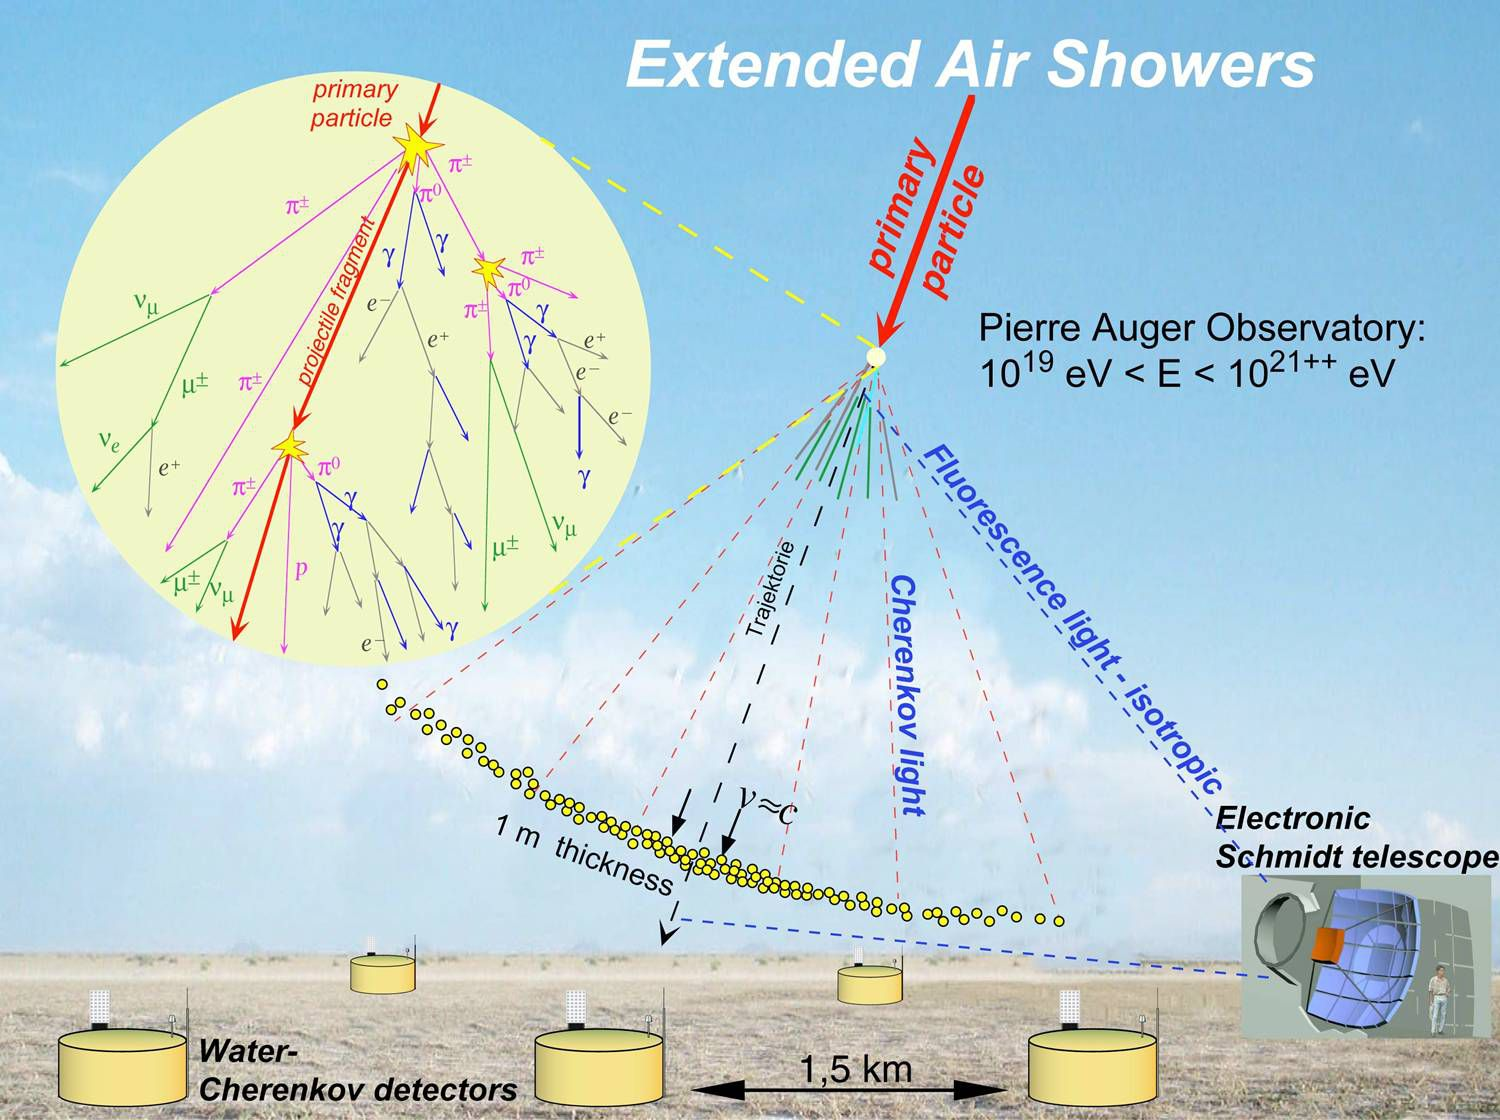 A highly energised cosmic ray particle produces a shower of cascading secondary particles. This process is shown in the diagram below. On the ground can be seen the Cherenkov detectors and the telescopes observing the ultraviolet rays emitted by fluorescence. Credit: Gilles Maurin.